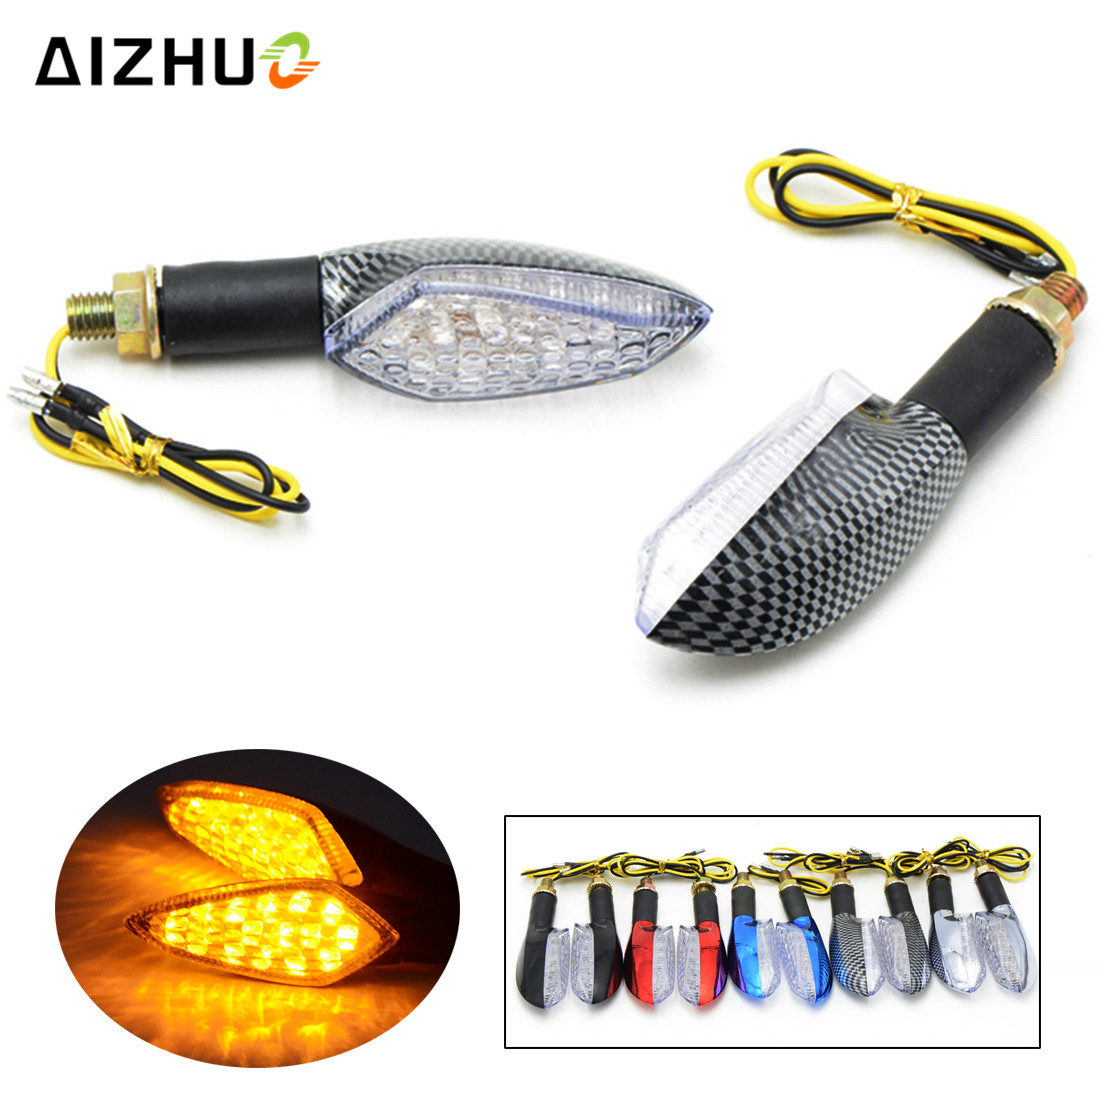 Motorcycle LED Turn Signal Lights Scooter Flasher Indicators Flasher Lights for ducati monster 696 600 honda cb1000r vfr 800 image